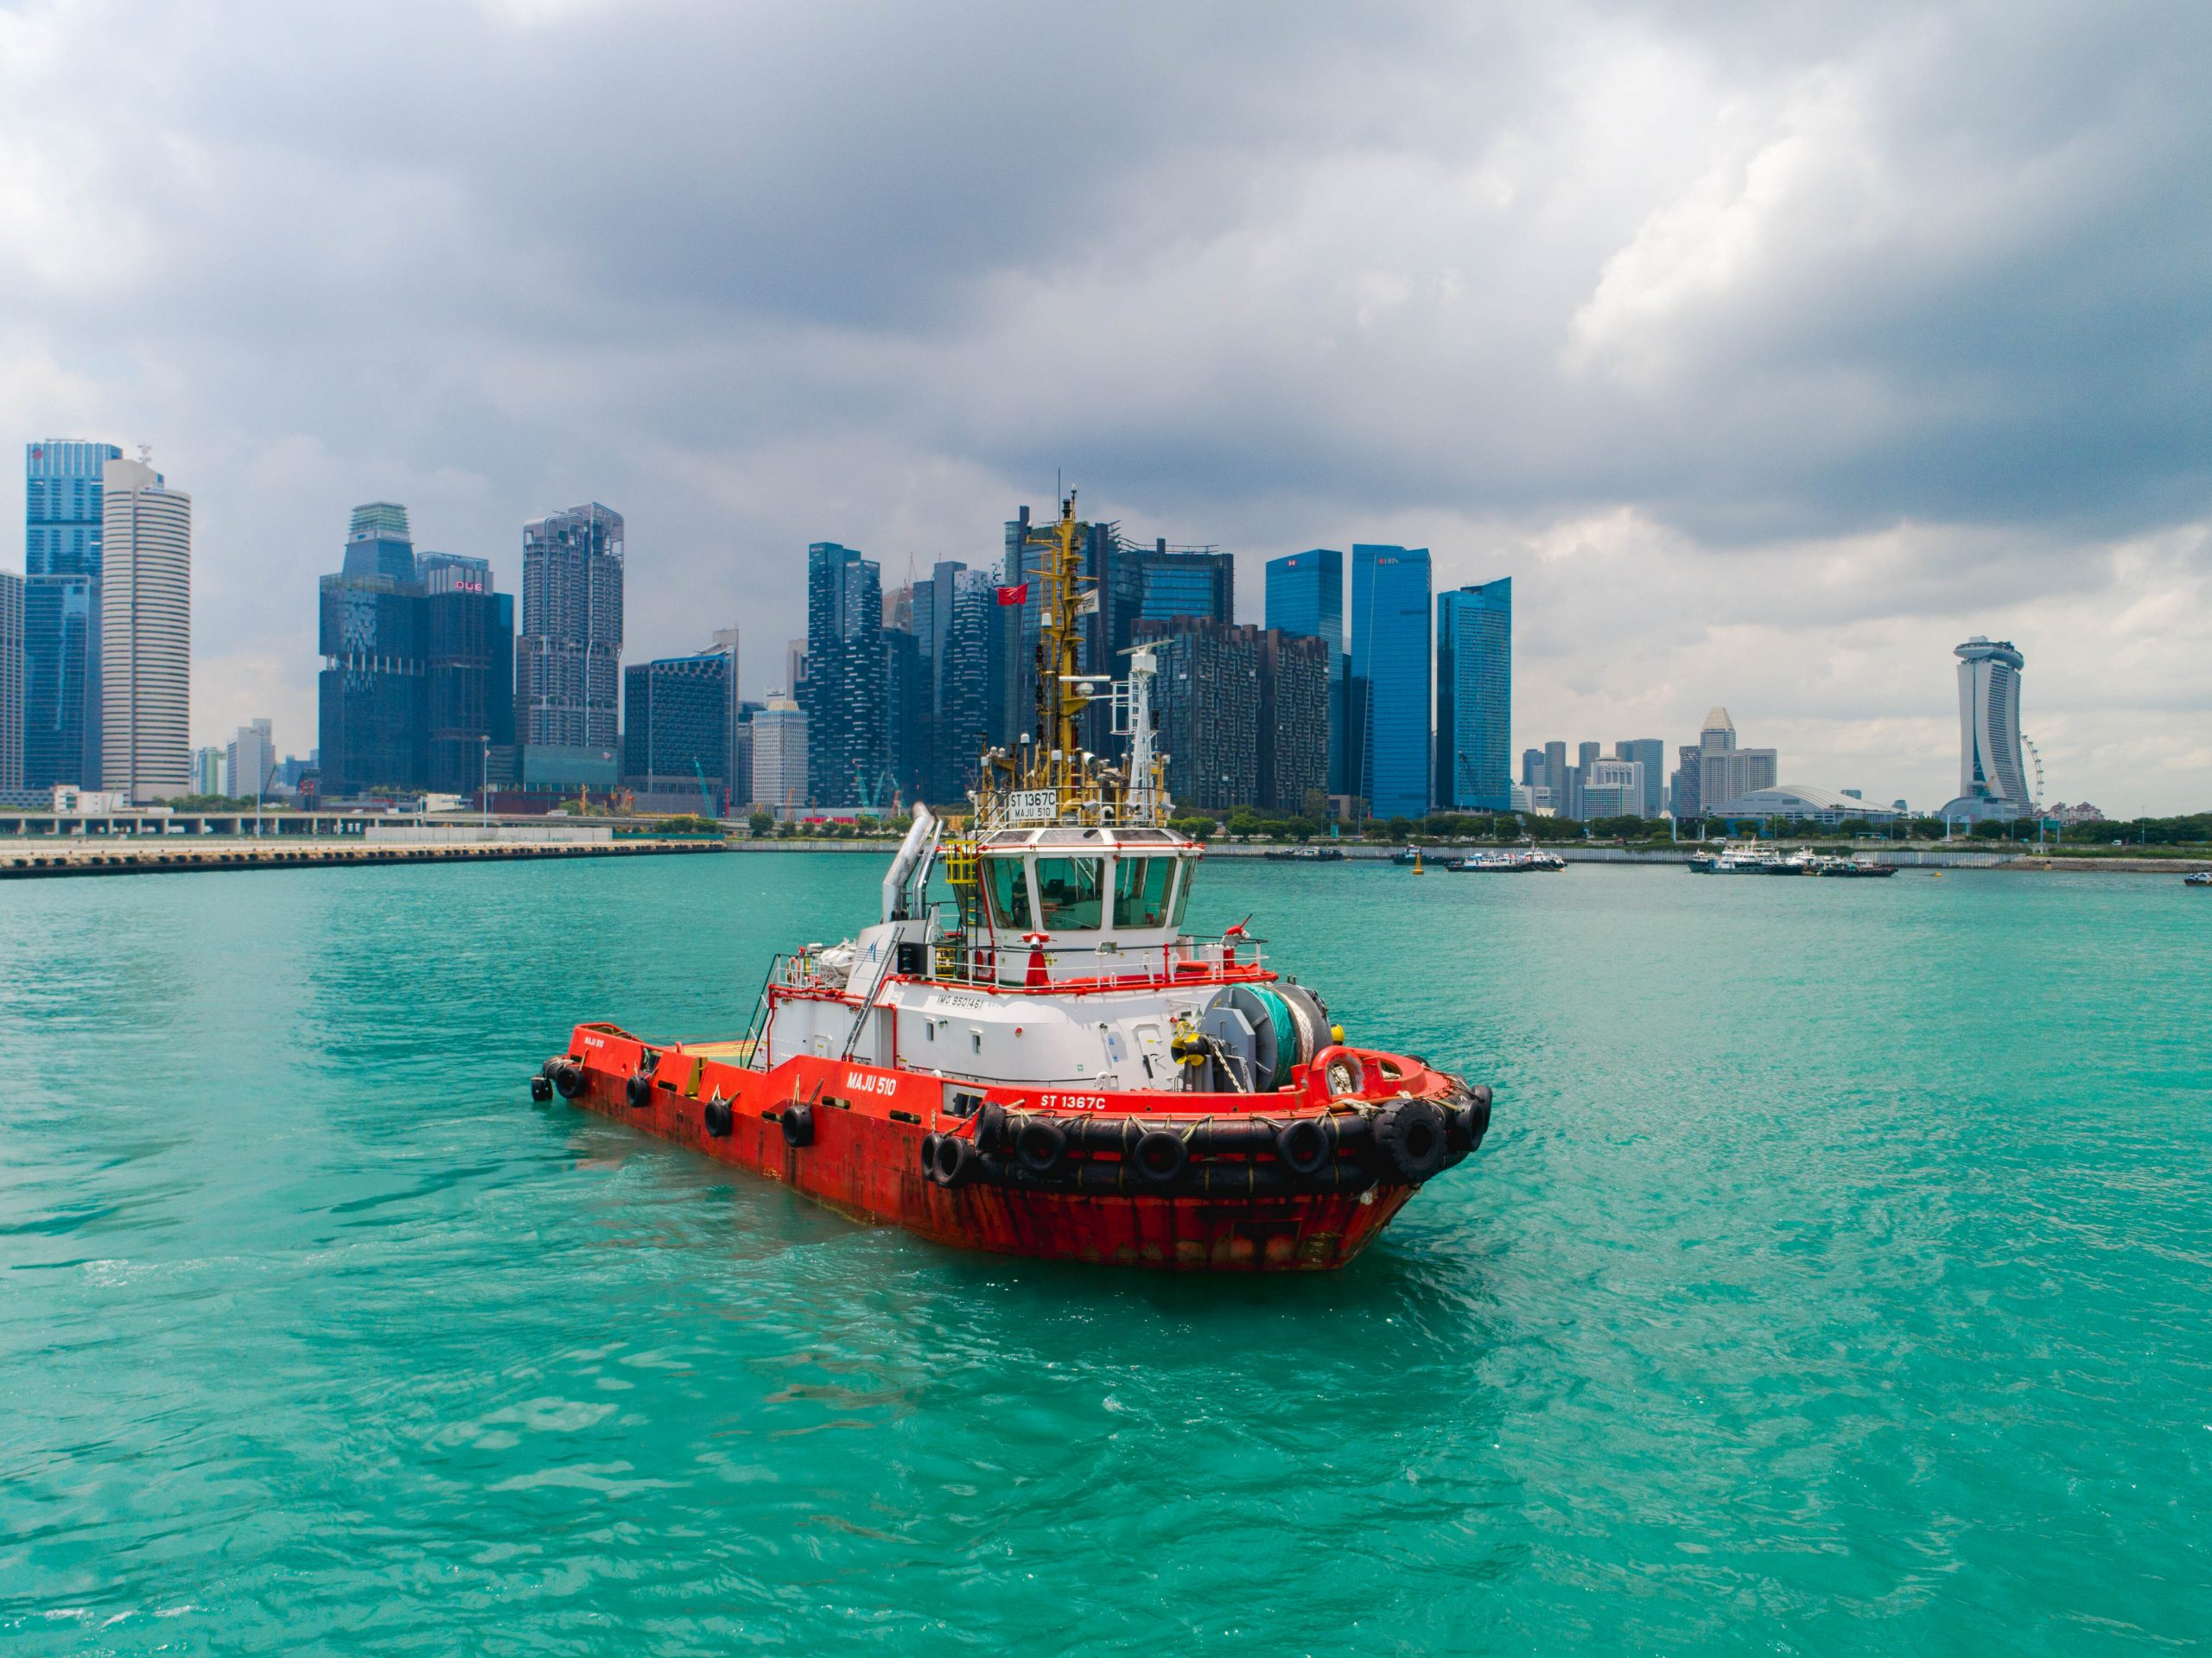 [VIDEO] ABB and Keppel trial remote controlled tug Singapore